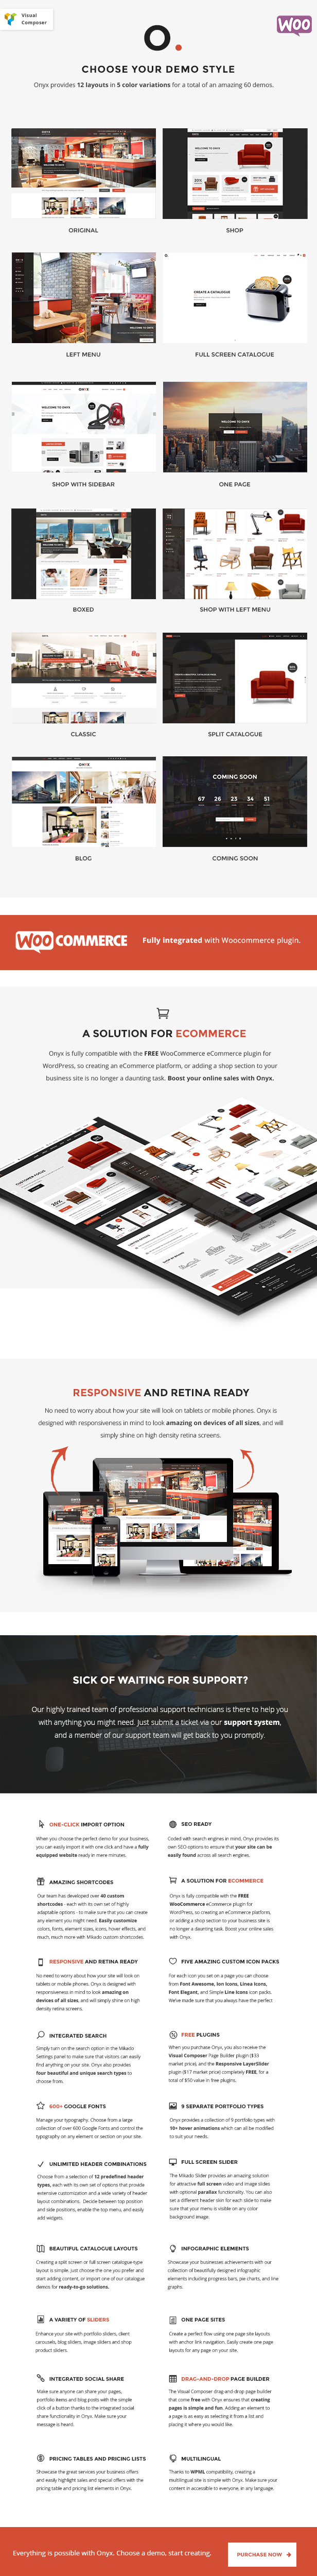 Onyx - A Powerful Multi-Concept Business Theme